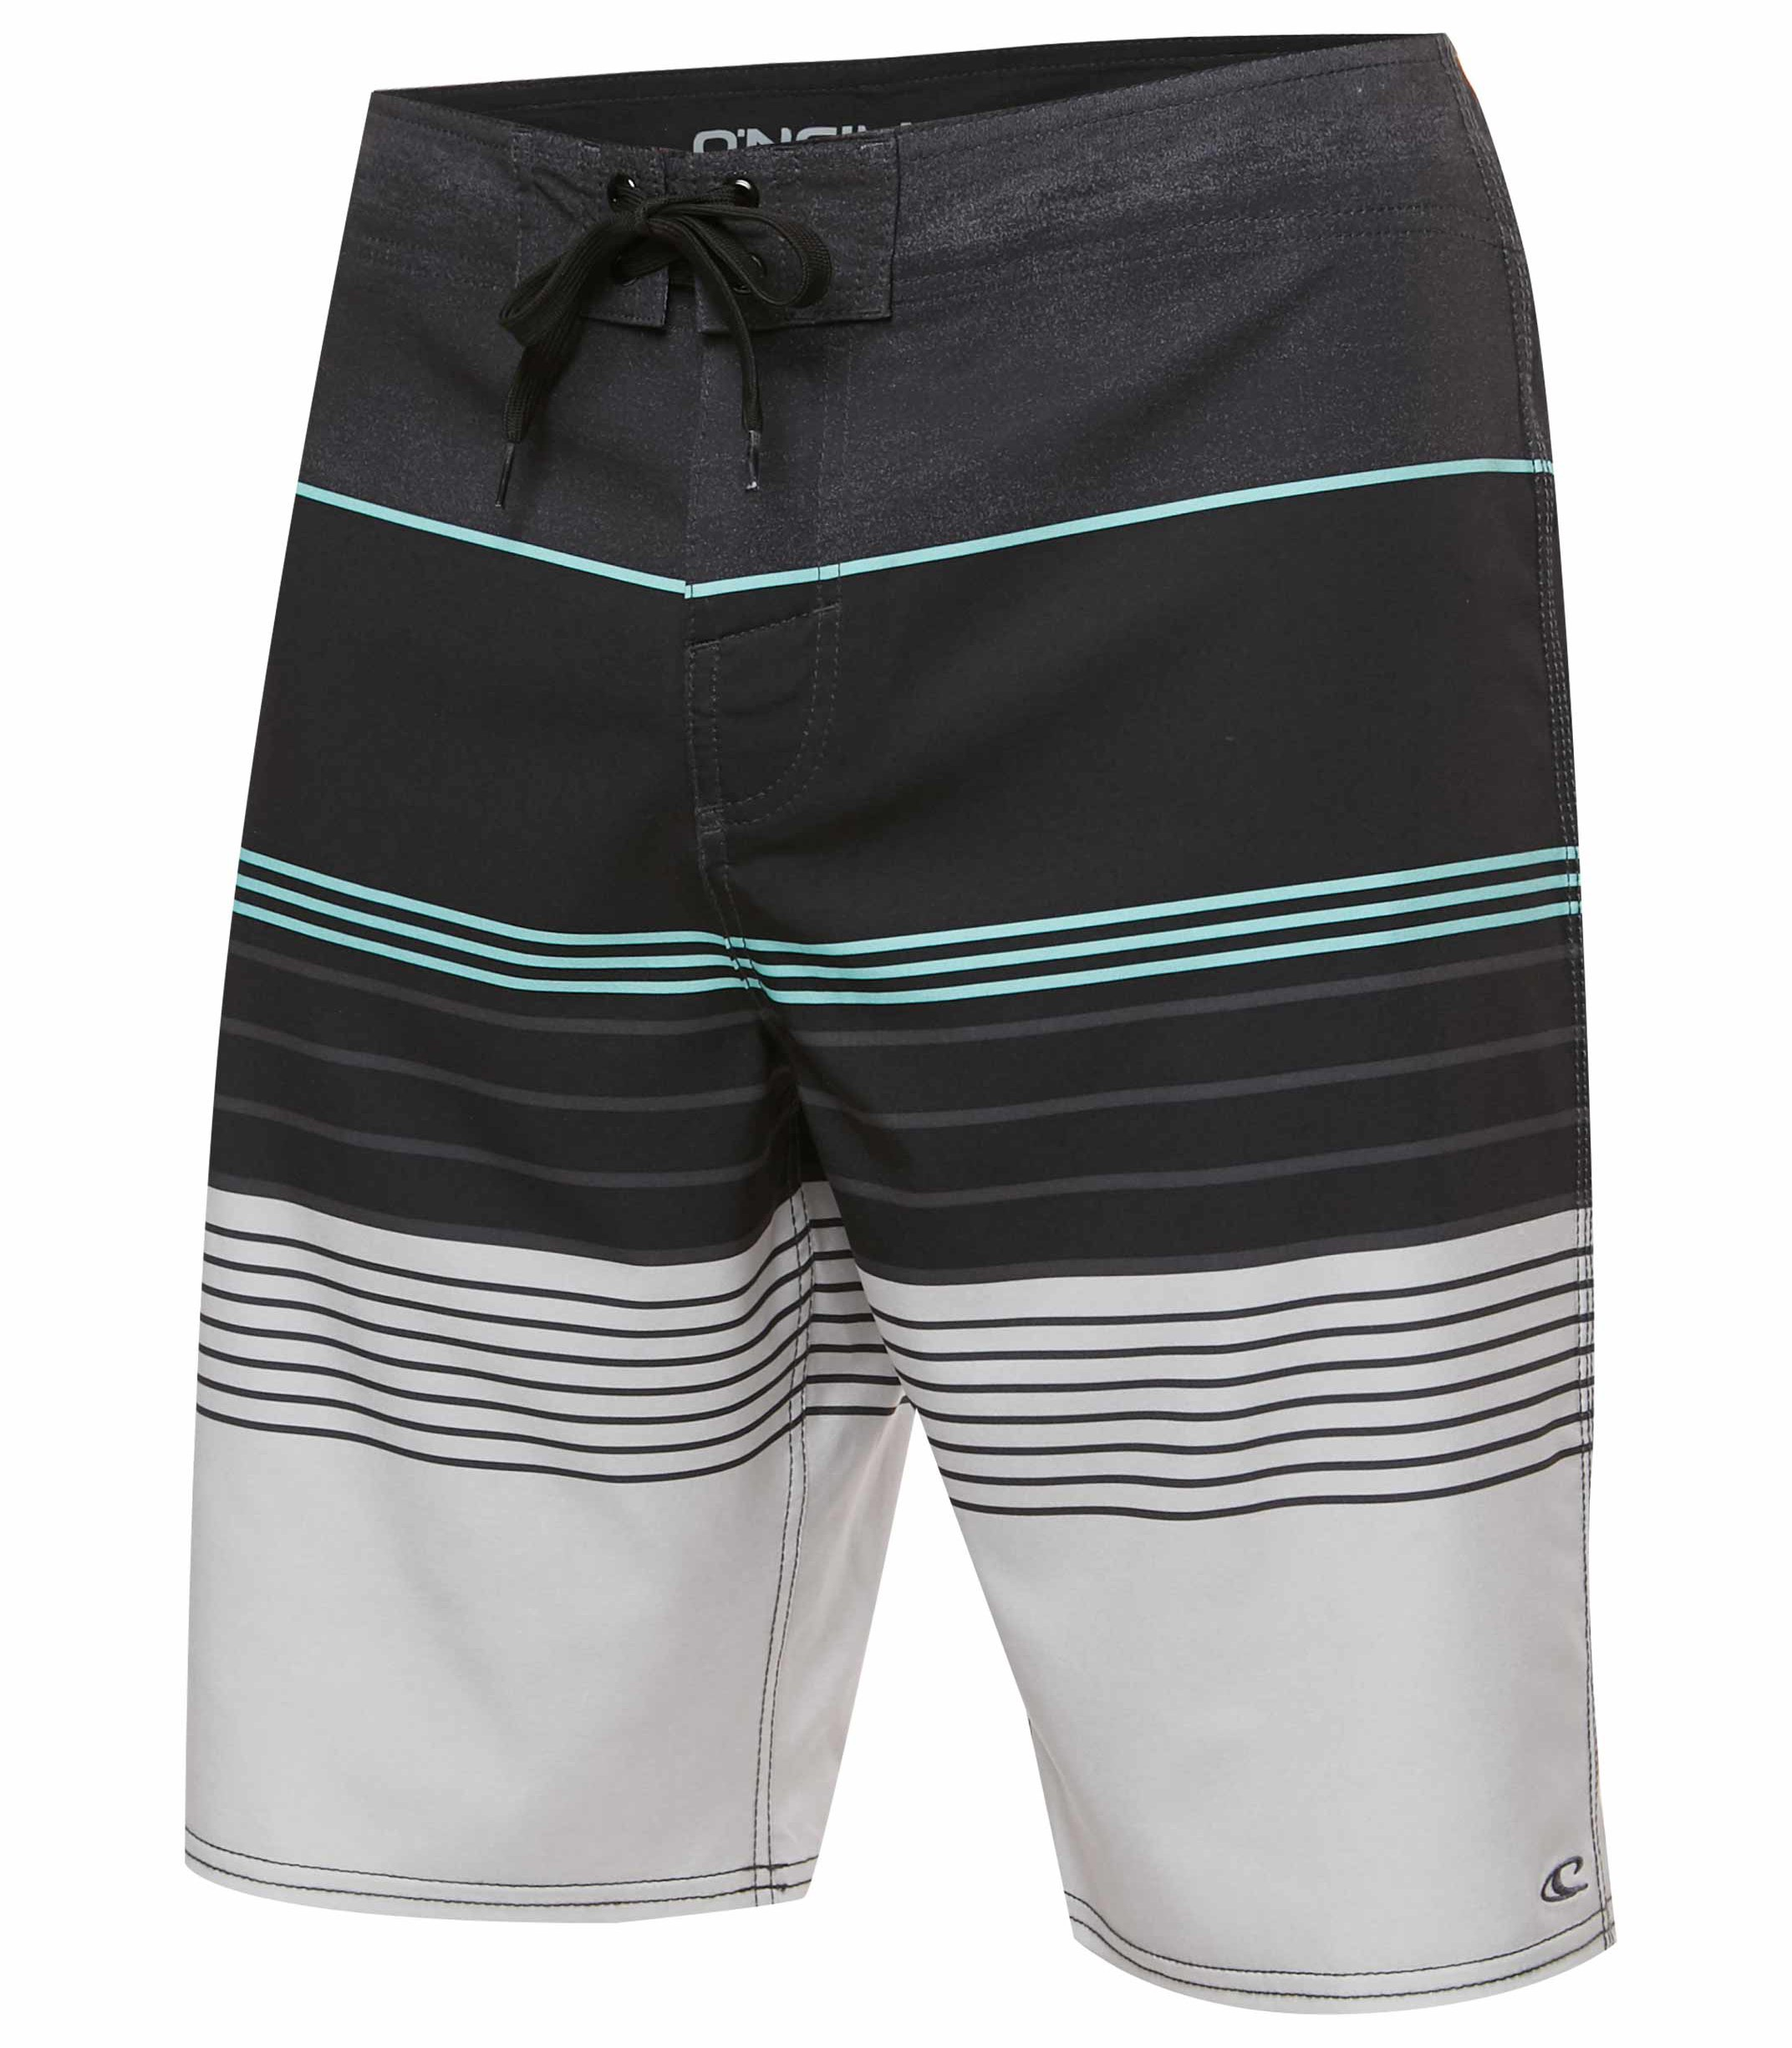 6db30f6724 Best Rated in Men's Board Shorts & Helpful Customer Reviews - Amazon.com